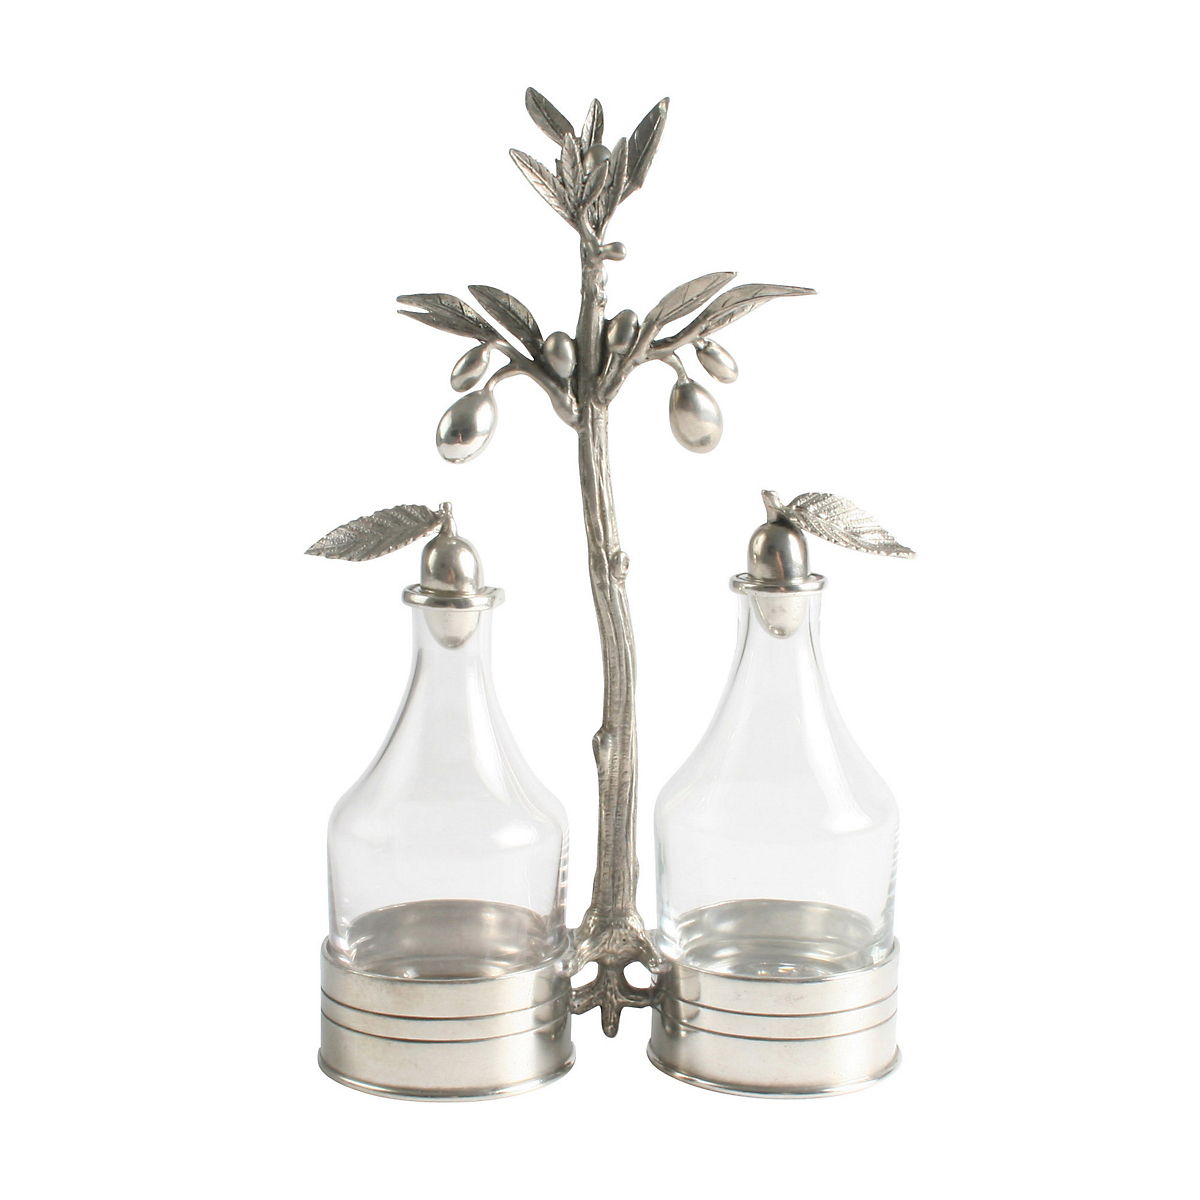 Vagabond House Olive Oil & Vinegar Set